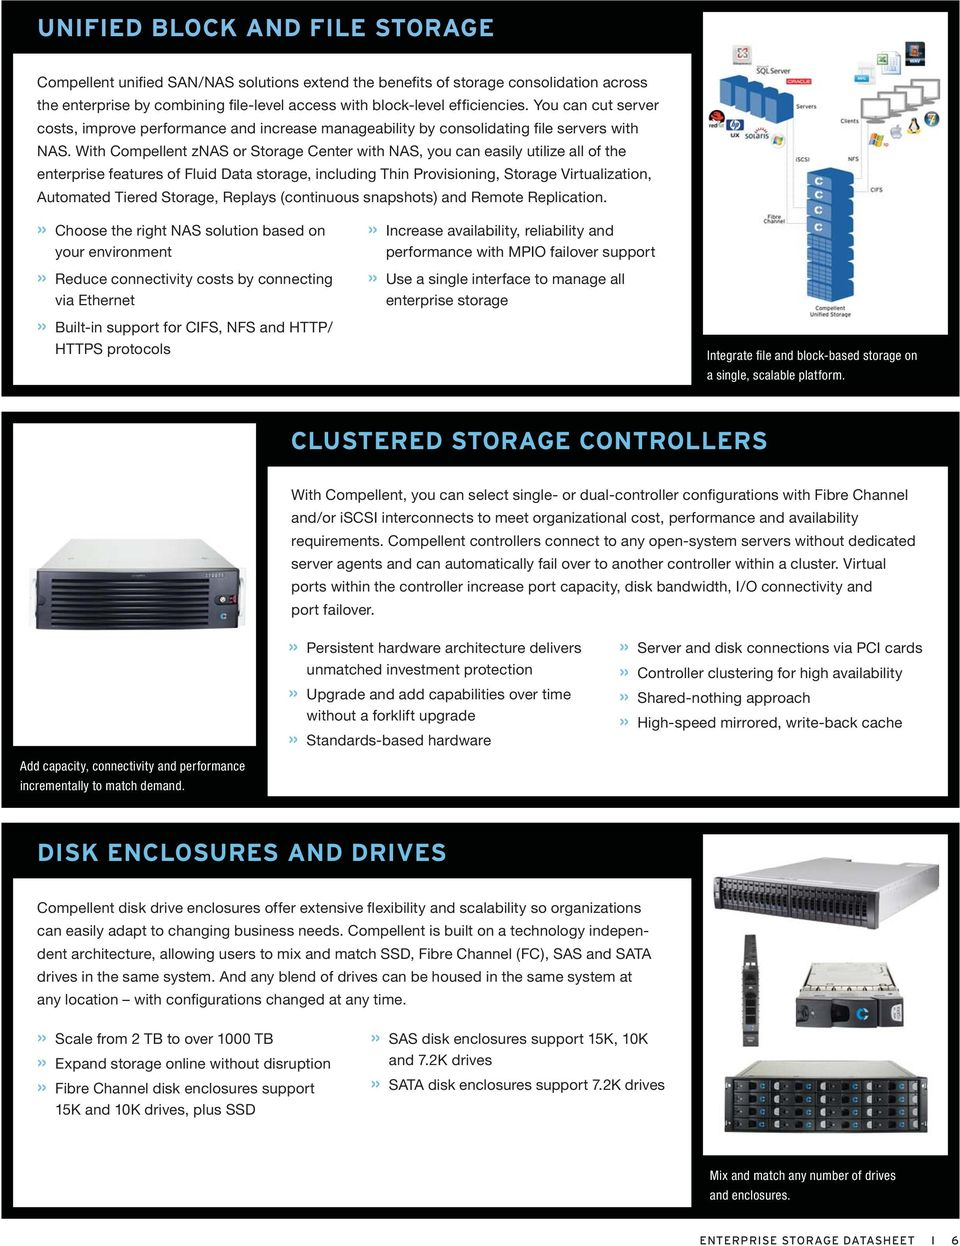 With Compellent znas or Storage Center with NAS, you can easily utilize all of the enterprise features of Fluid storage, including Thin Provisioning, Storage Virtualization, Automated Tiered Storage,